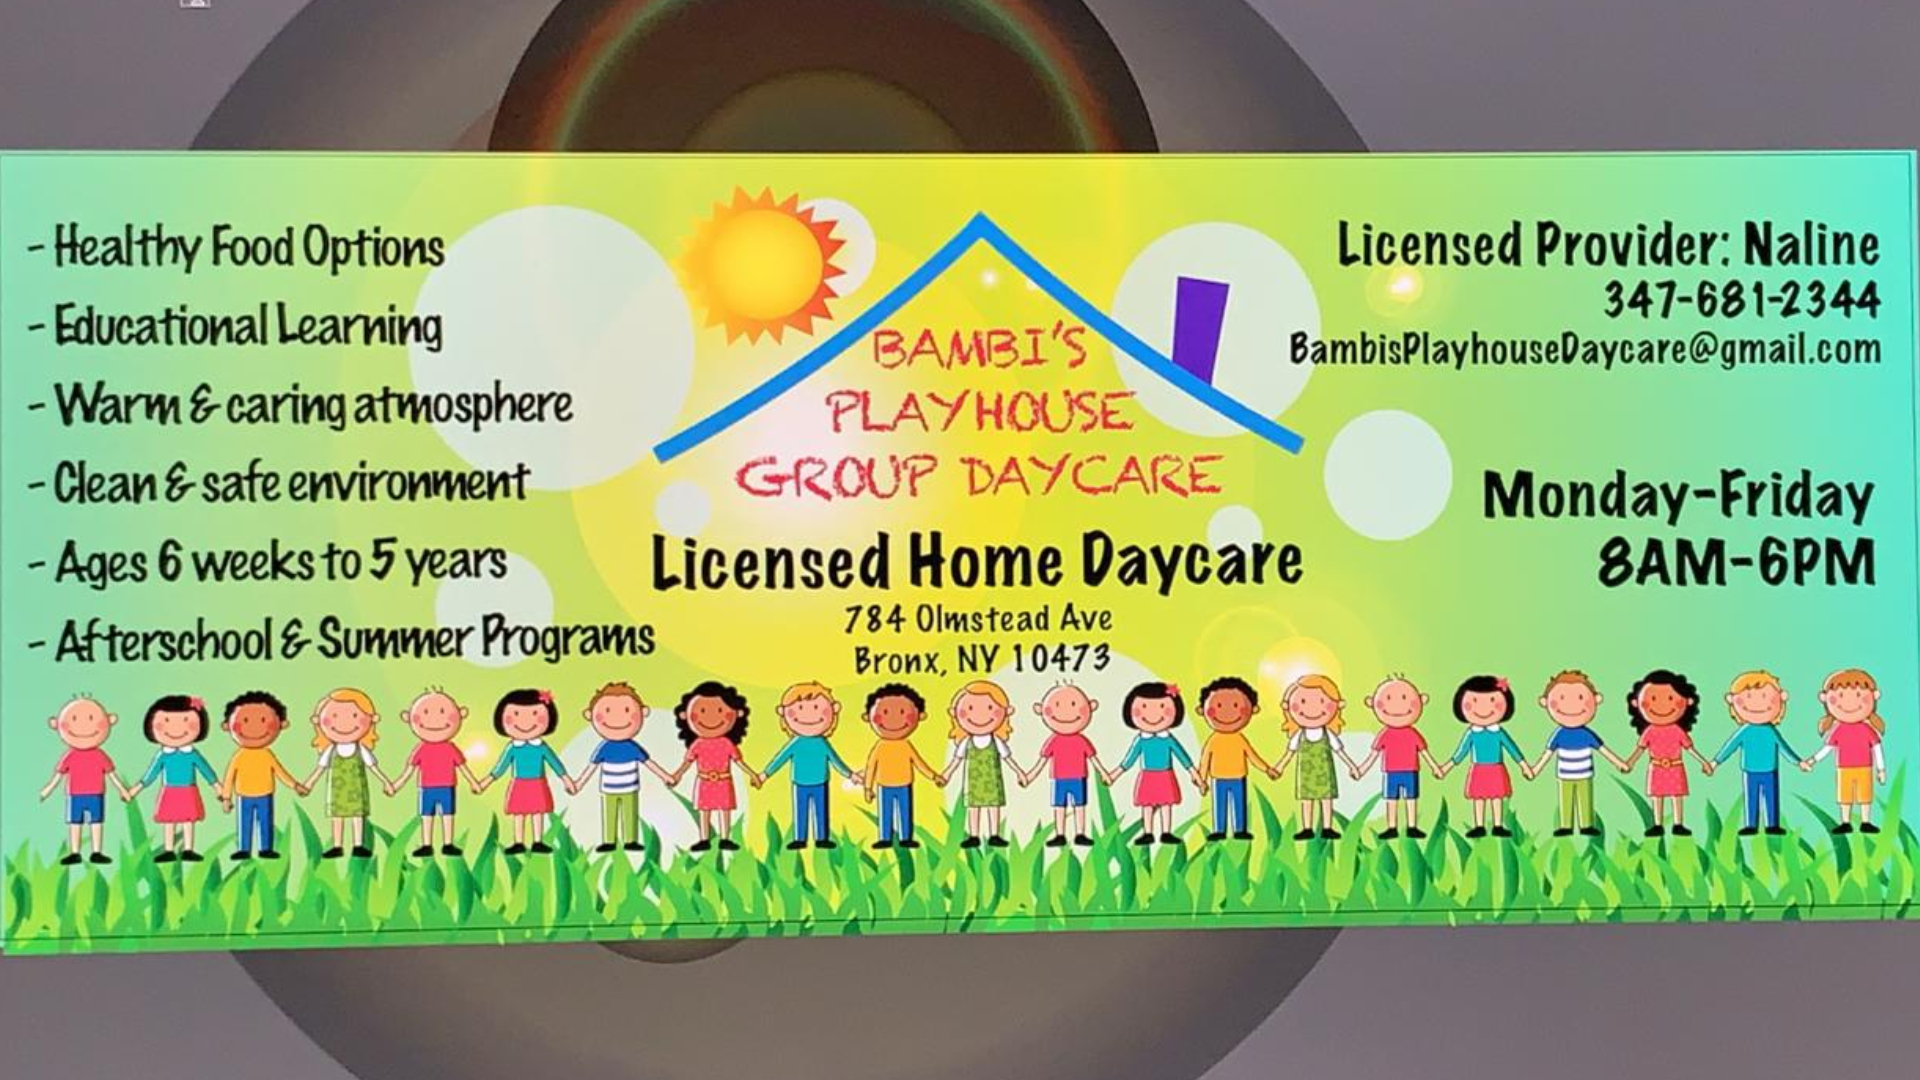 Bambi's Playhouse Group Daycare